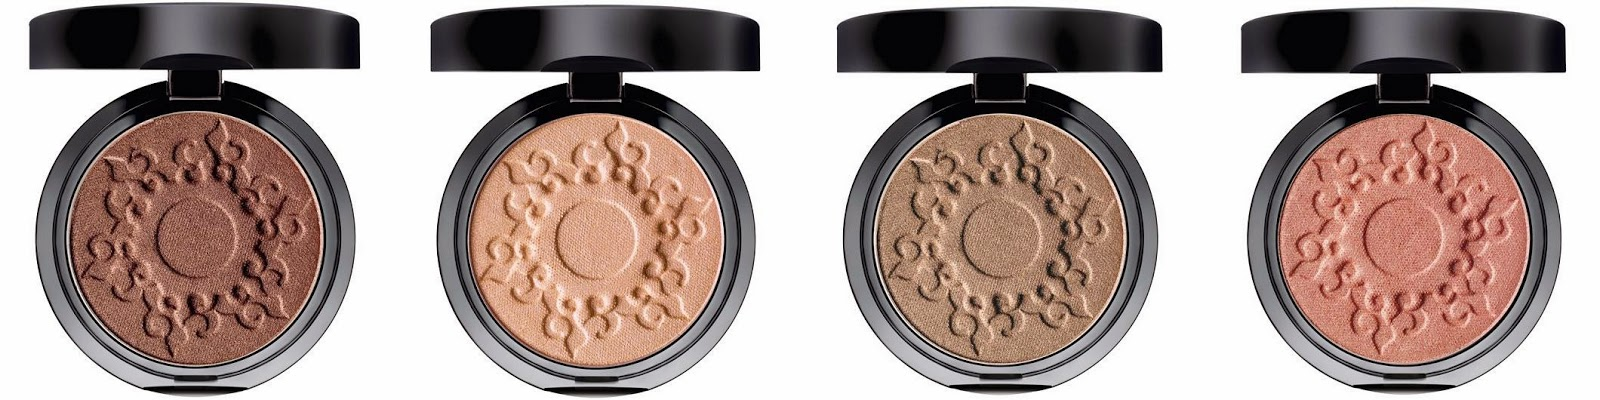 artdeco-eyeshadow-promo-here-comes-the-sun-summer-2015-collection-picture